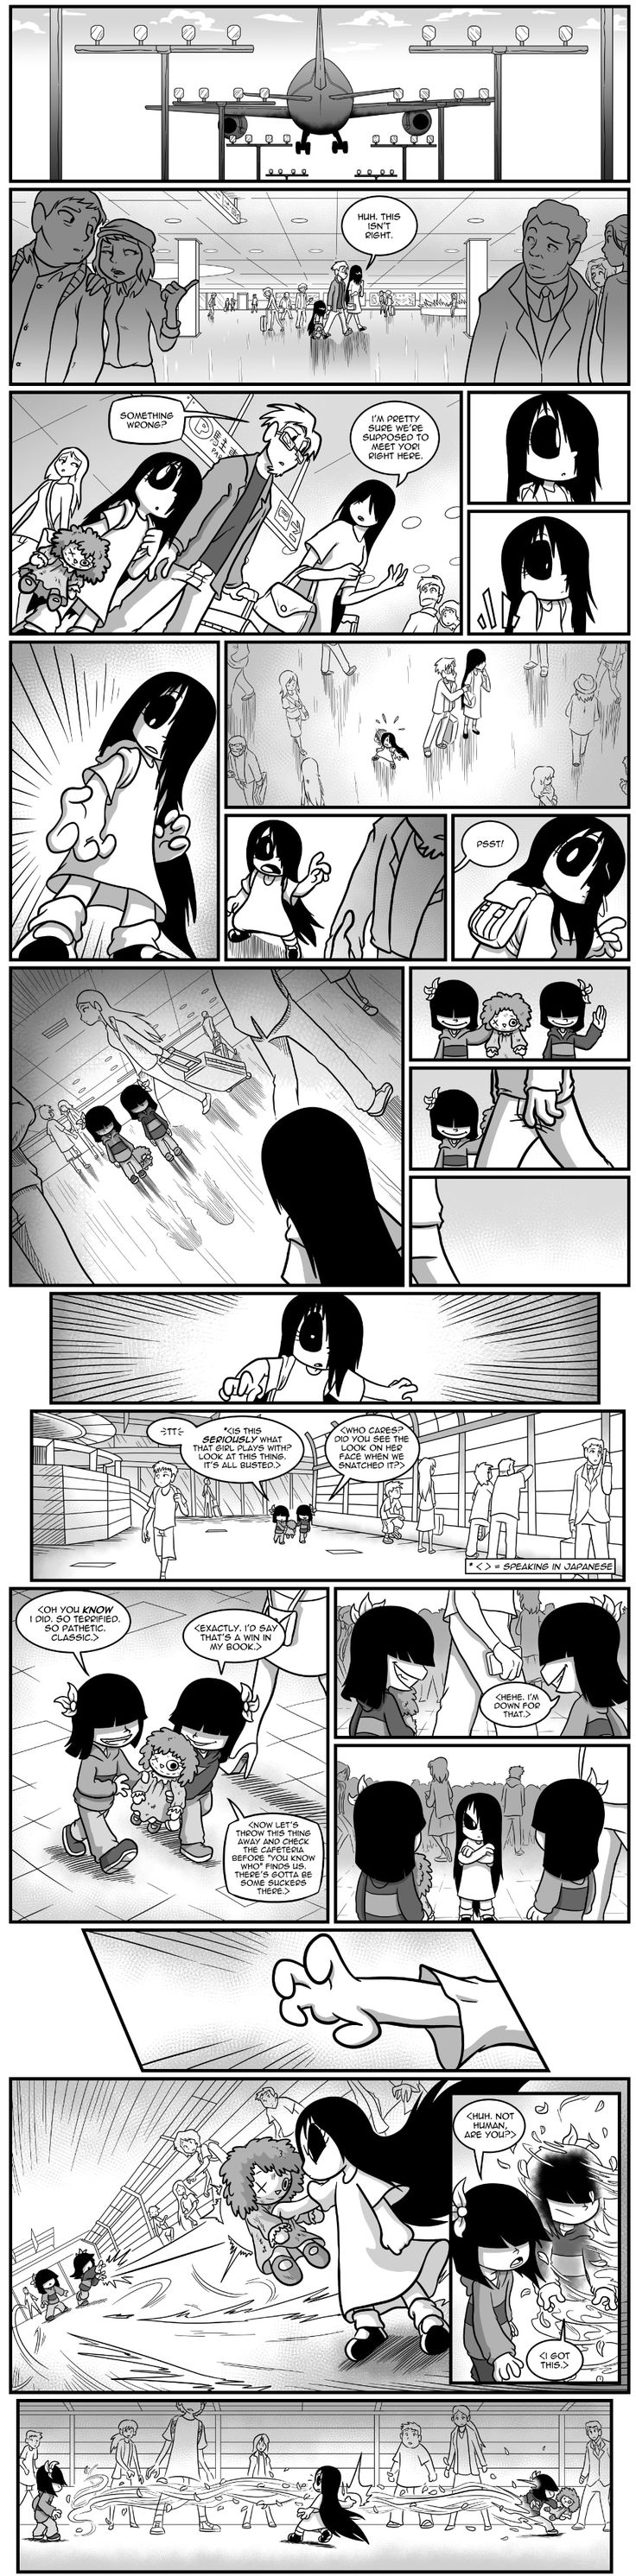 Erma- The Family Reunion Part 5 - image